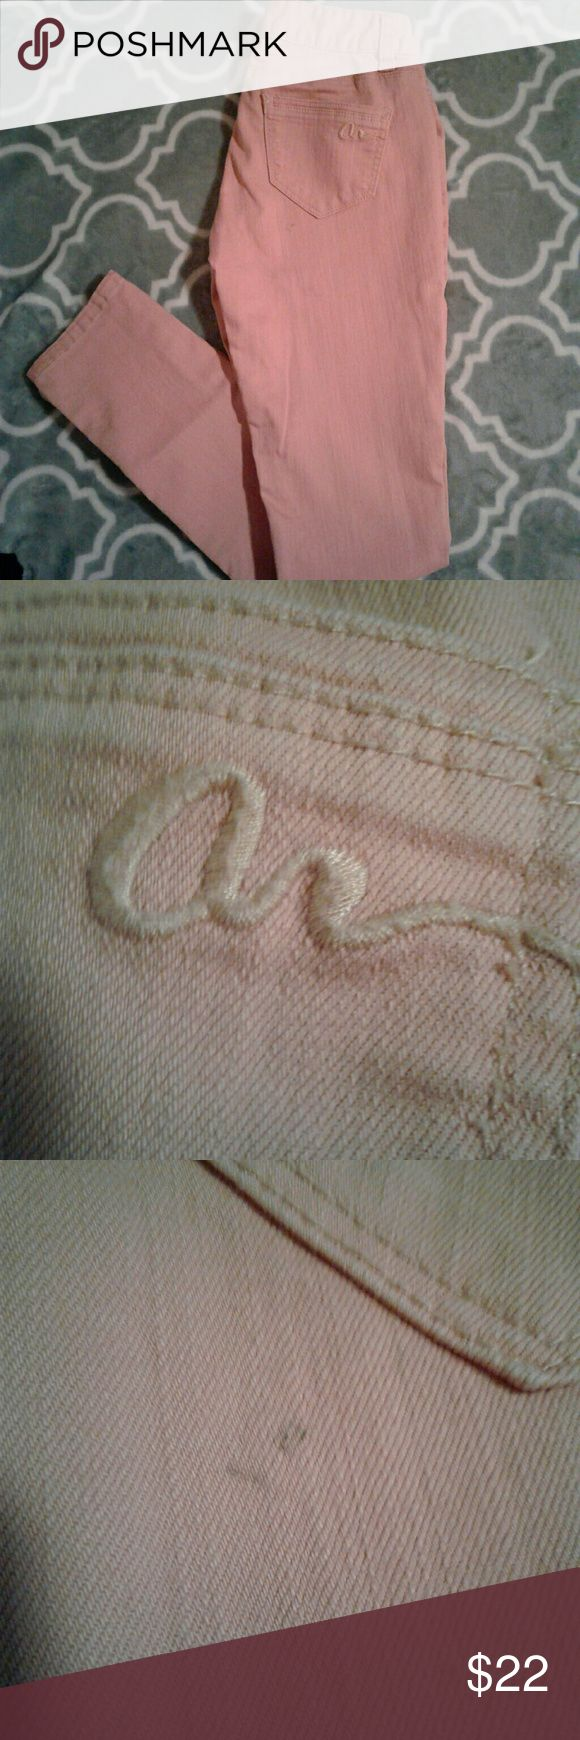 """American Rag skinny Jean Women's very gently pre loved coral/Peach American Rag skinny jeans size S-0. One small blemish will probably come out in the wash, the itam has been in storage.  Beautiful jeans!! Measurements w 13 1/2"""" inseam 28"""" rise 9"""". Thanks for looking! Bundle to save !! American Rag Jeans Skinny"""